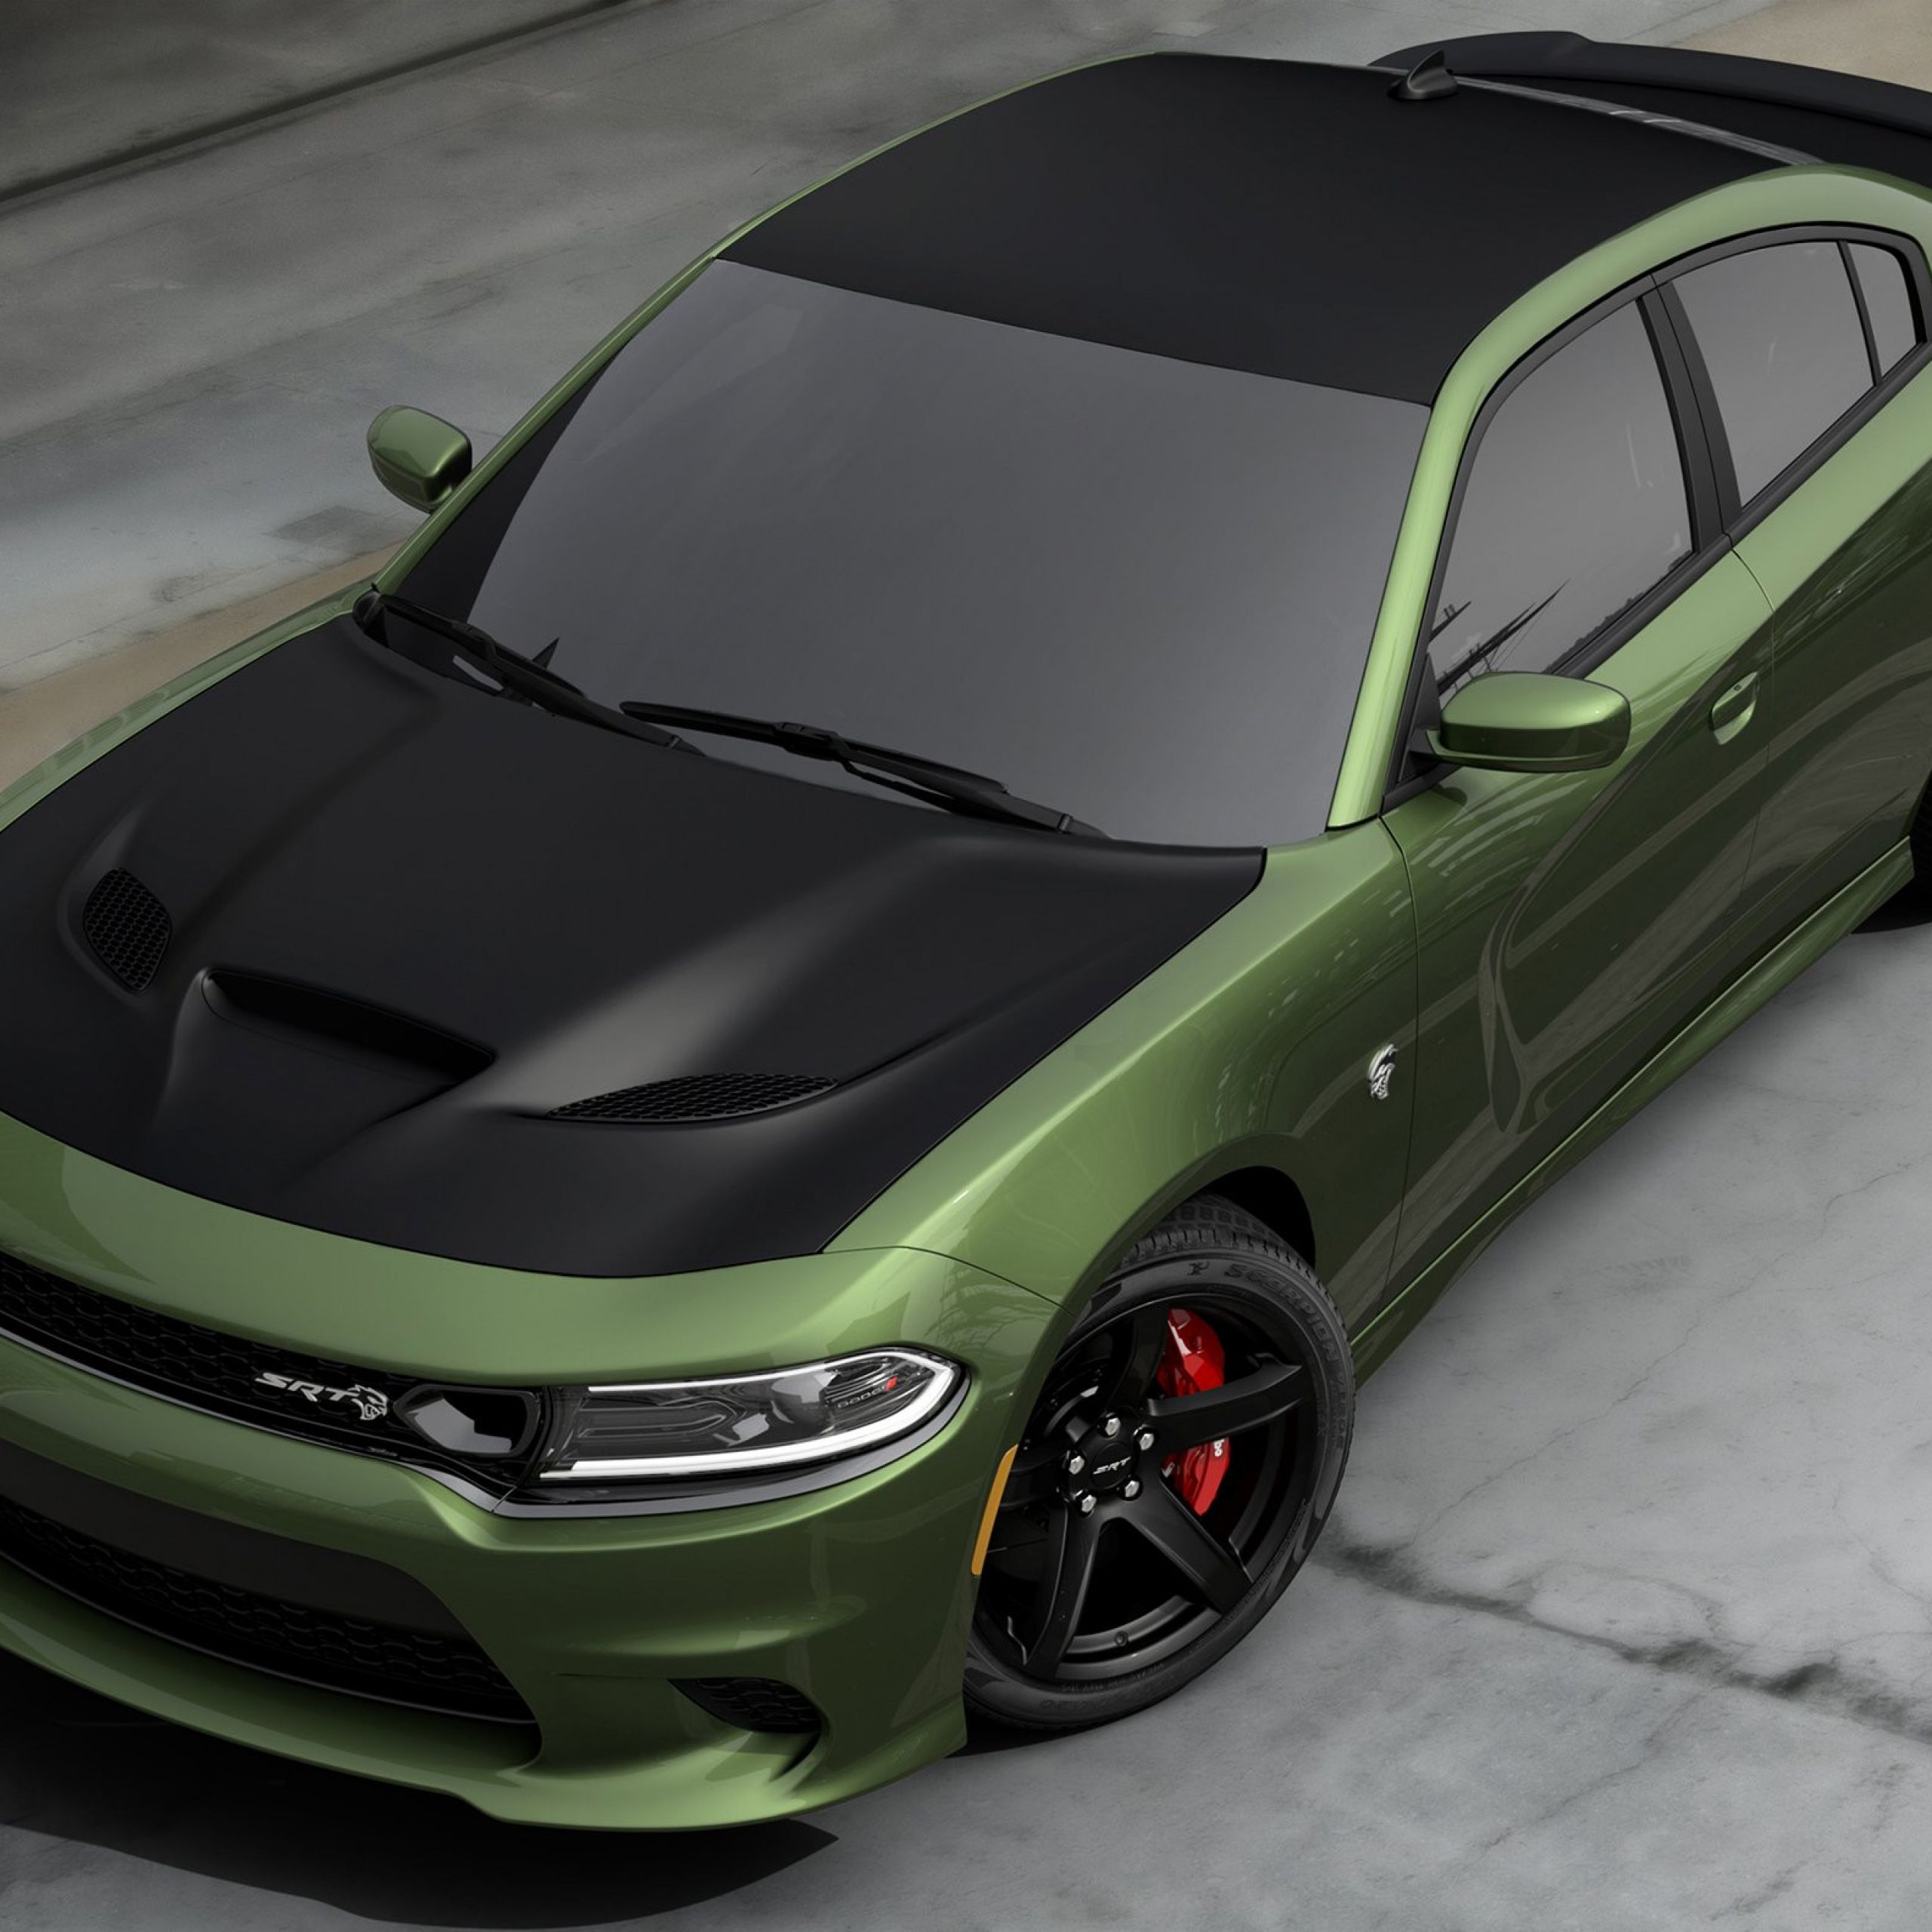 2018 Dodge Charger Rt Luxury 2020 Dodge Charger Stars & Stripes Edition